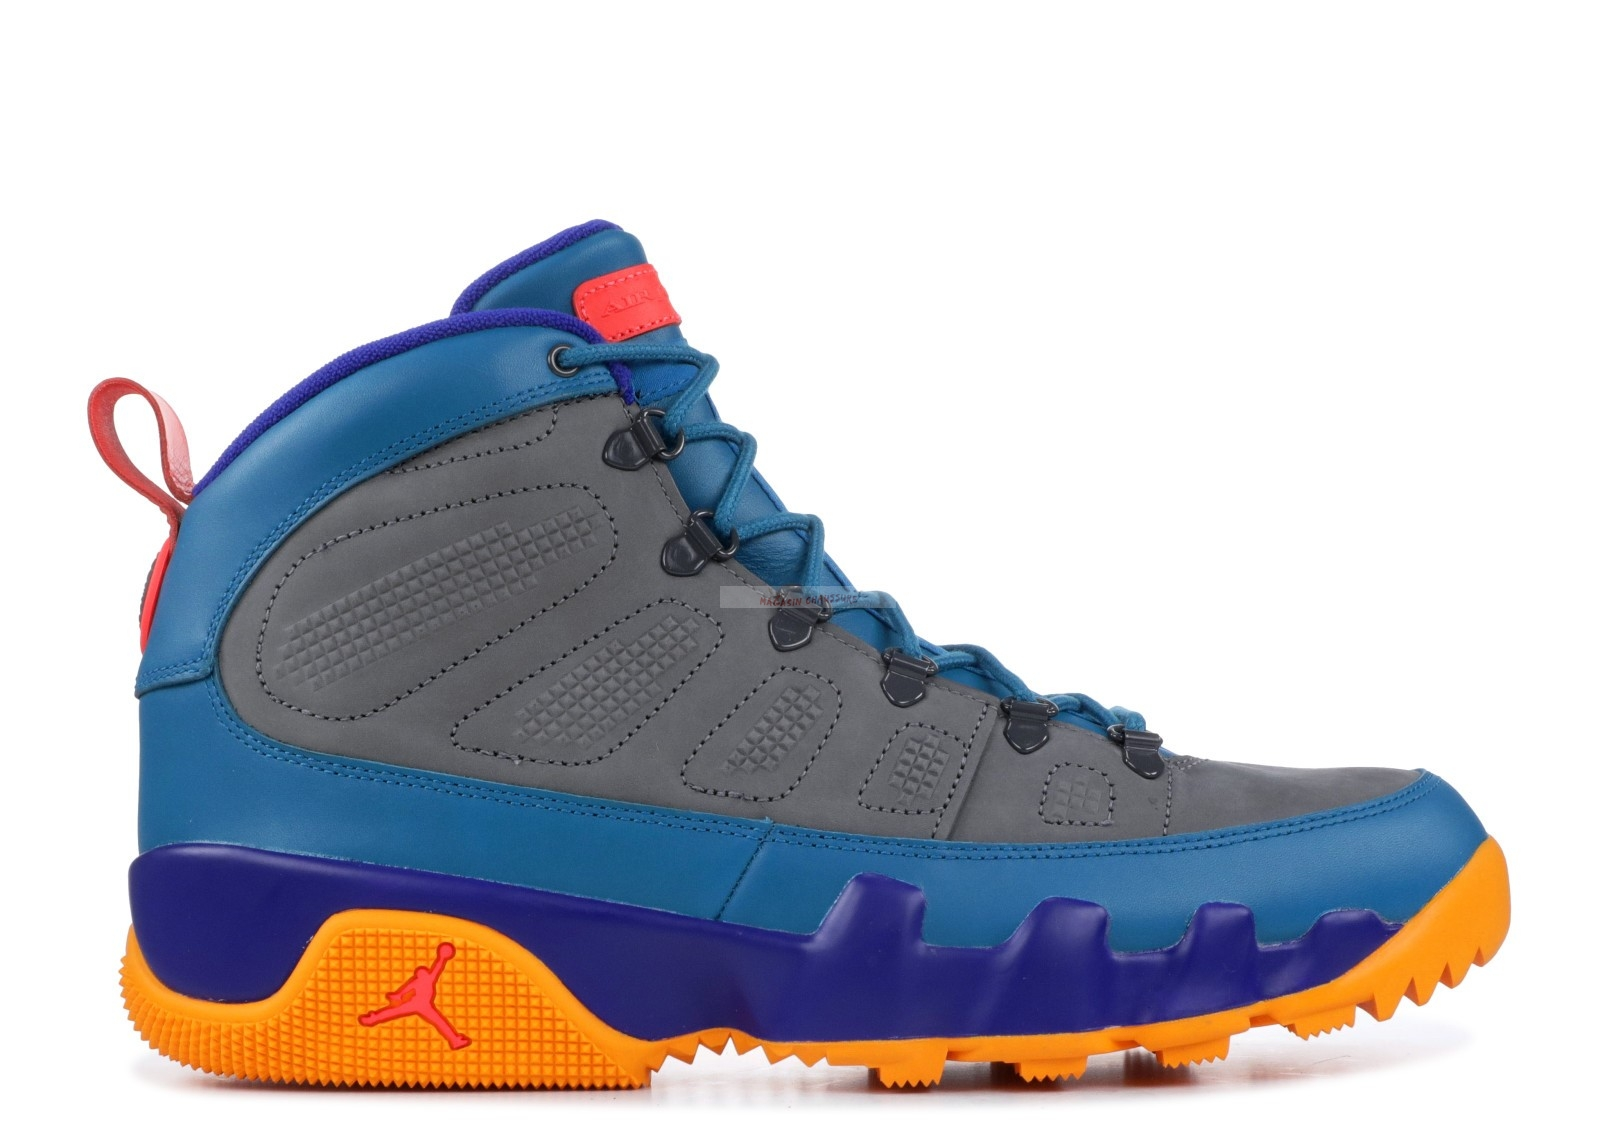 Air Jordan 9 Retro Boot Nrg Bleu Orange (ar4491-300) Chaussure de Basket